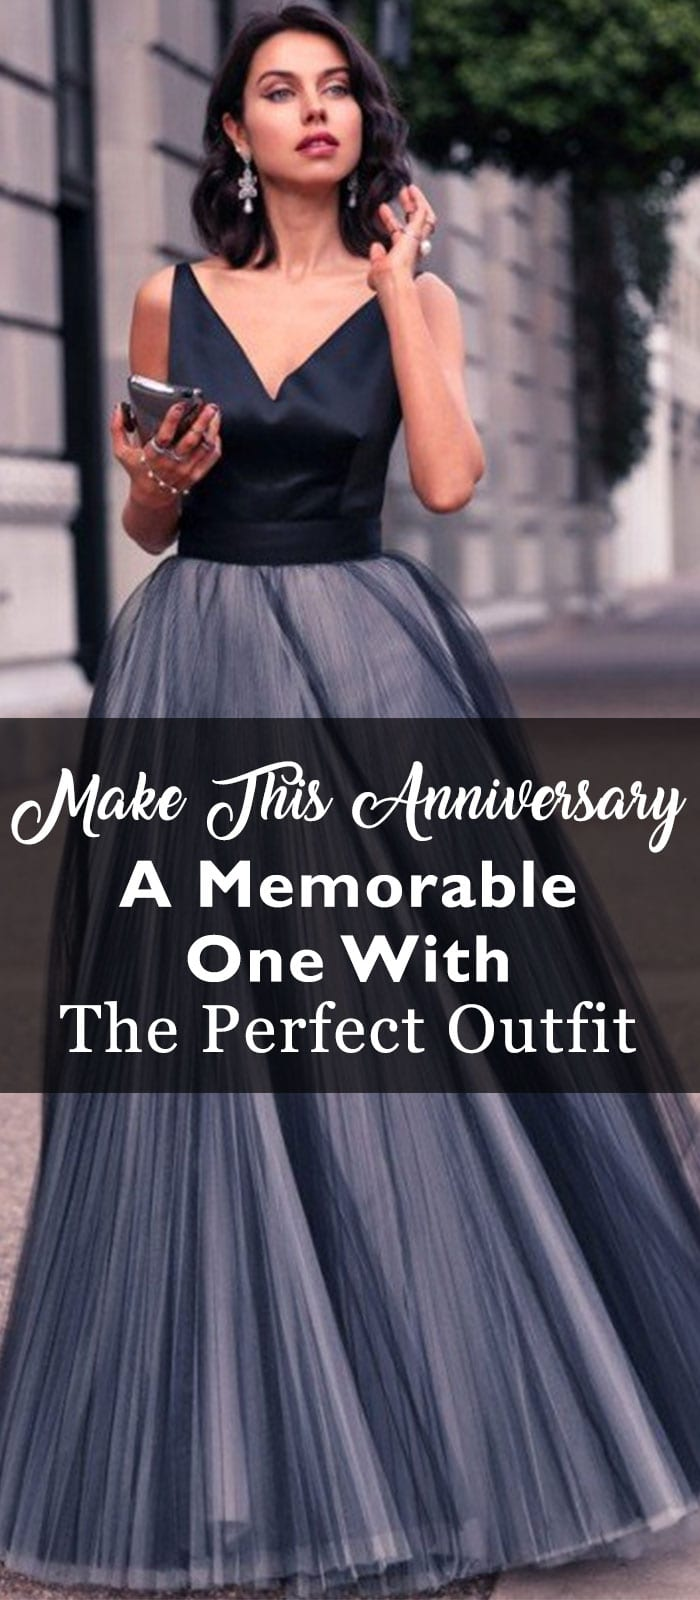 Make This Anniversary A Memorable One With The Perfect Outfit